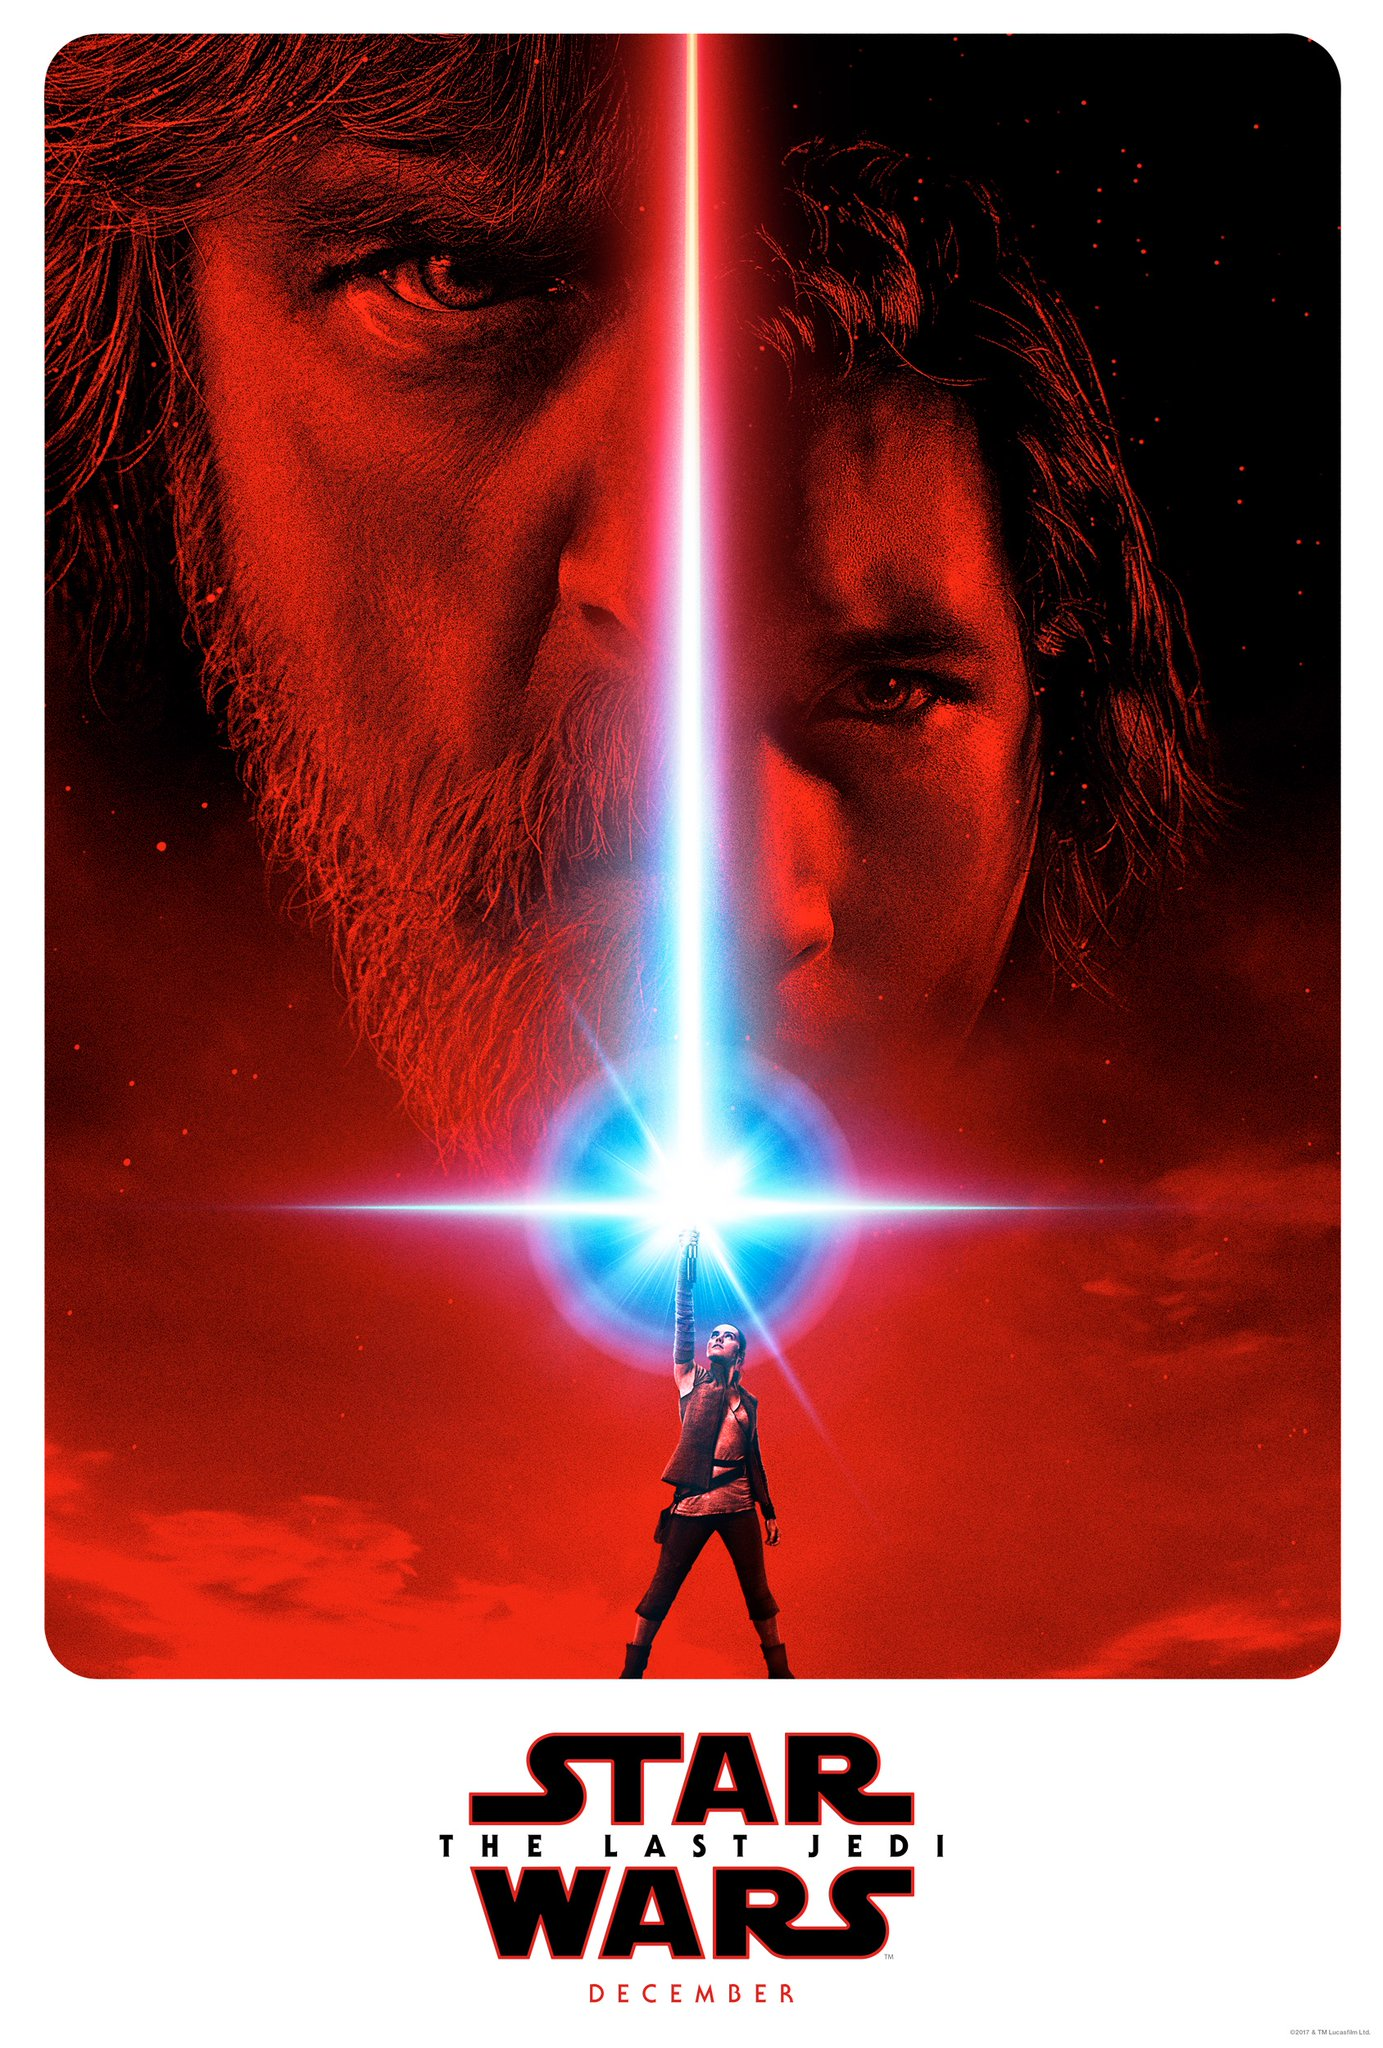 Star Wars: The Last Jedi - Poster #1